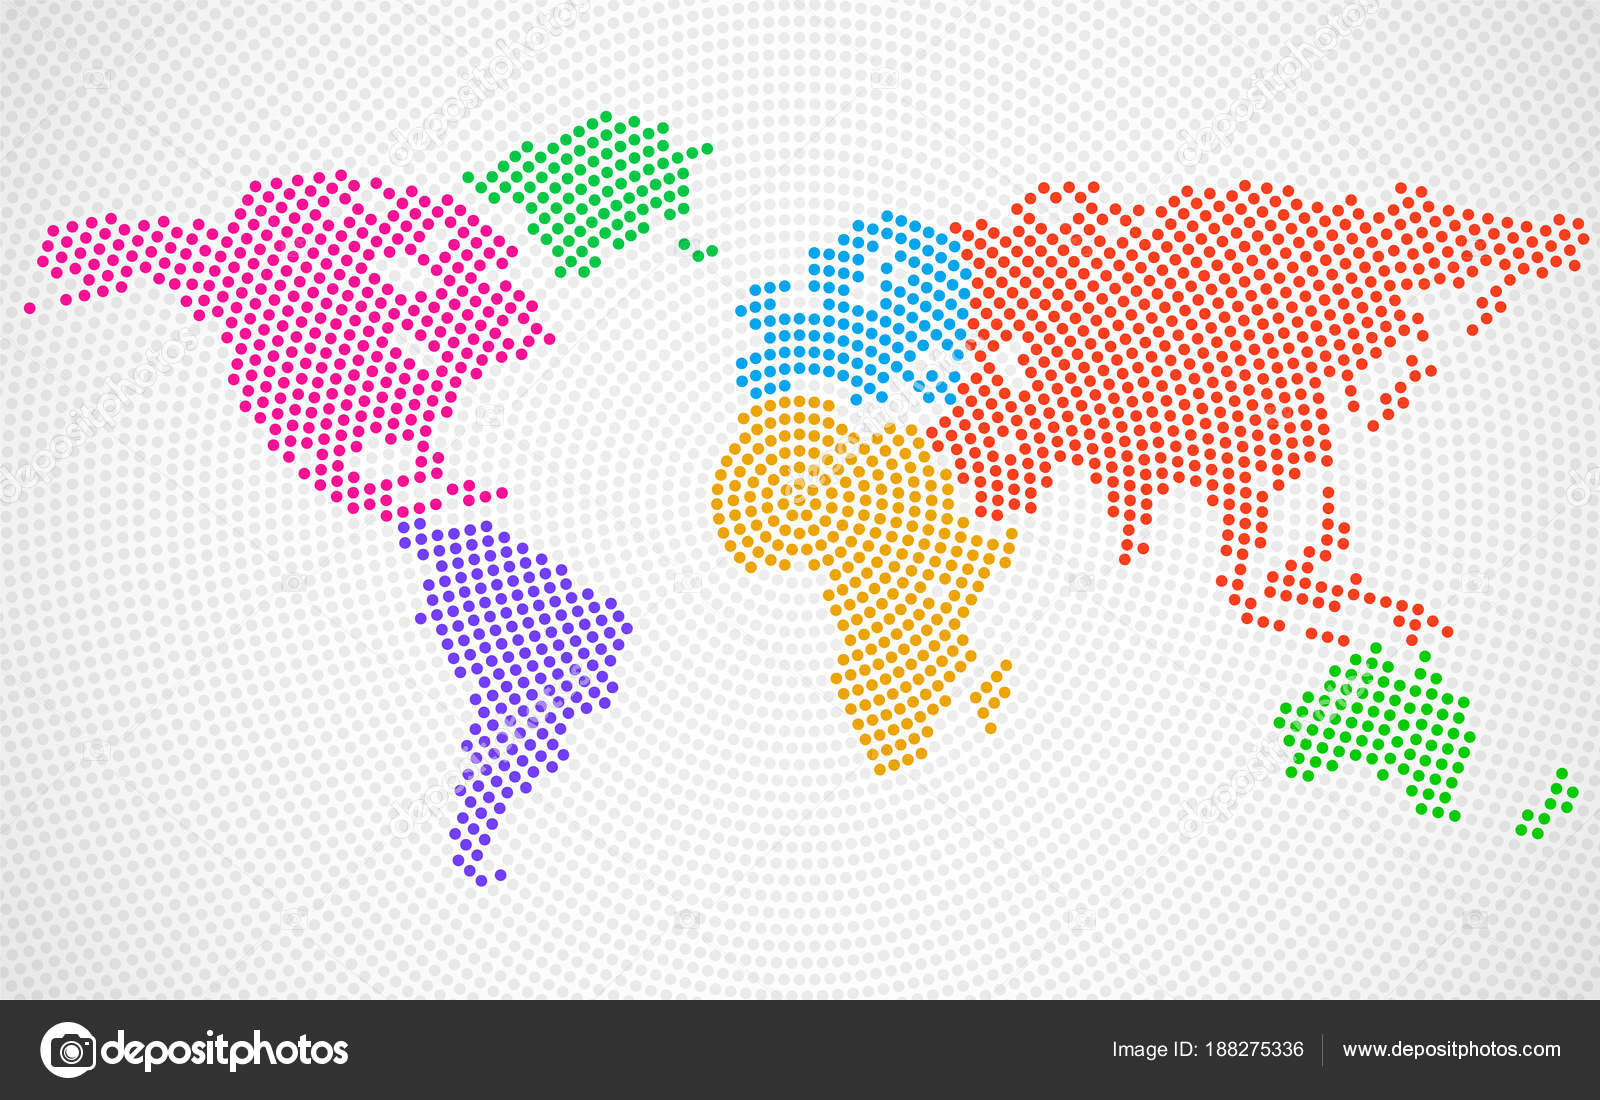 Abstract colorful world map of radial dots vector stock vector abstract colorful world map of radial dots vector stock vector gumiabroncs Choice Image